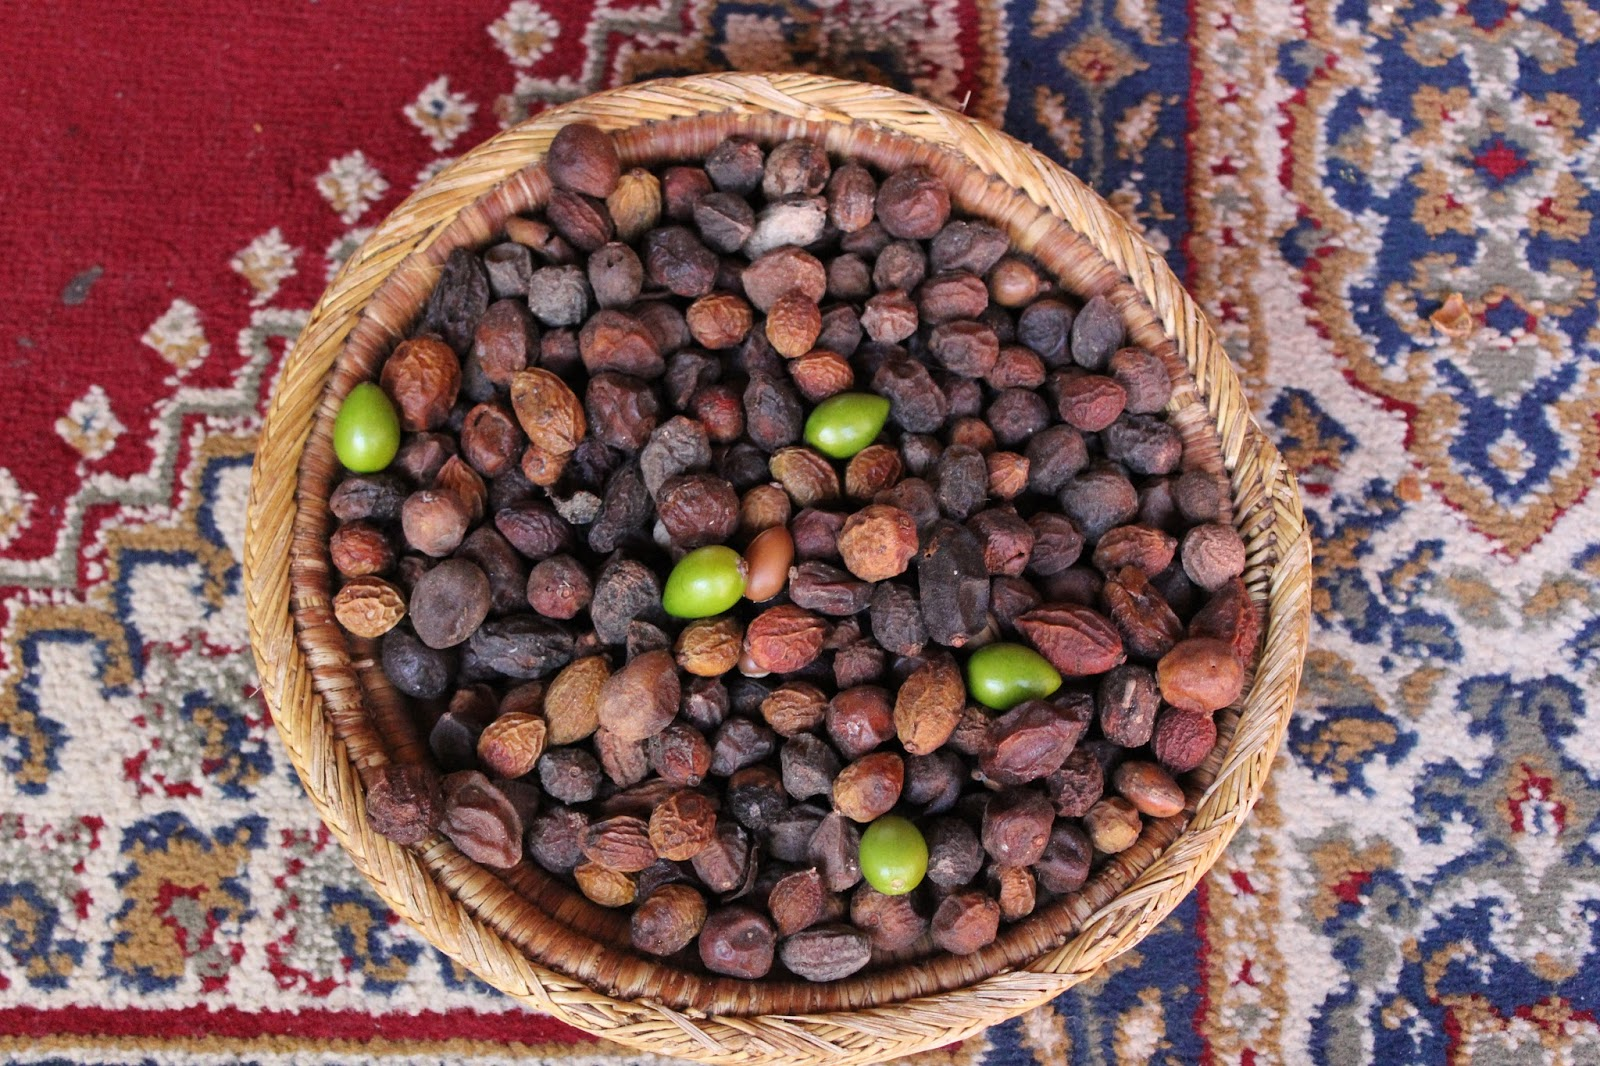 Digested Argan fruit